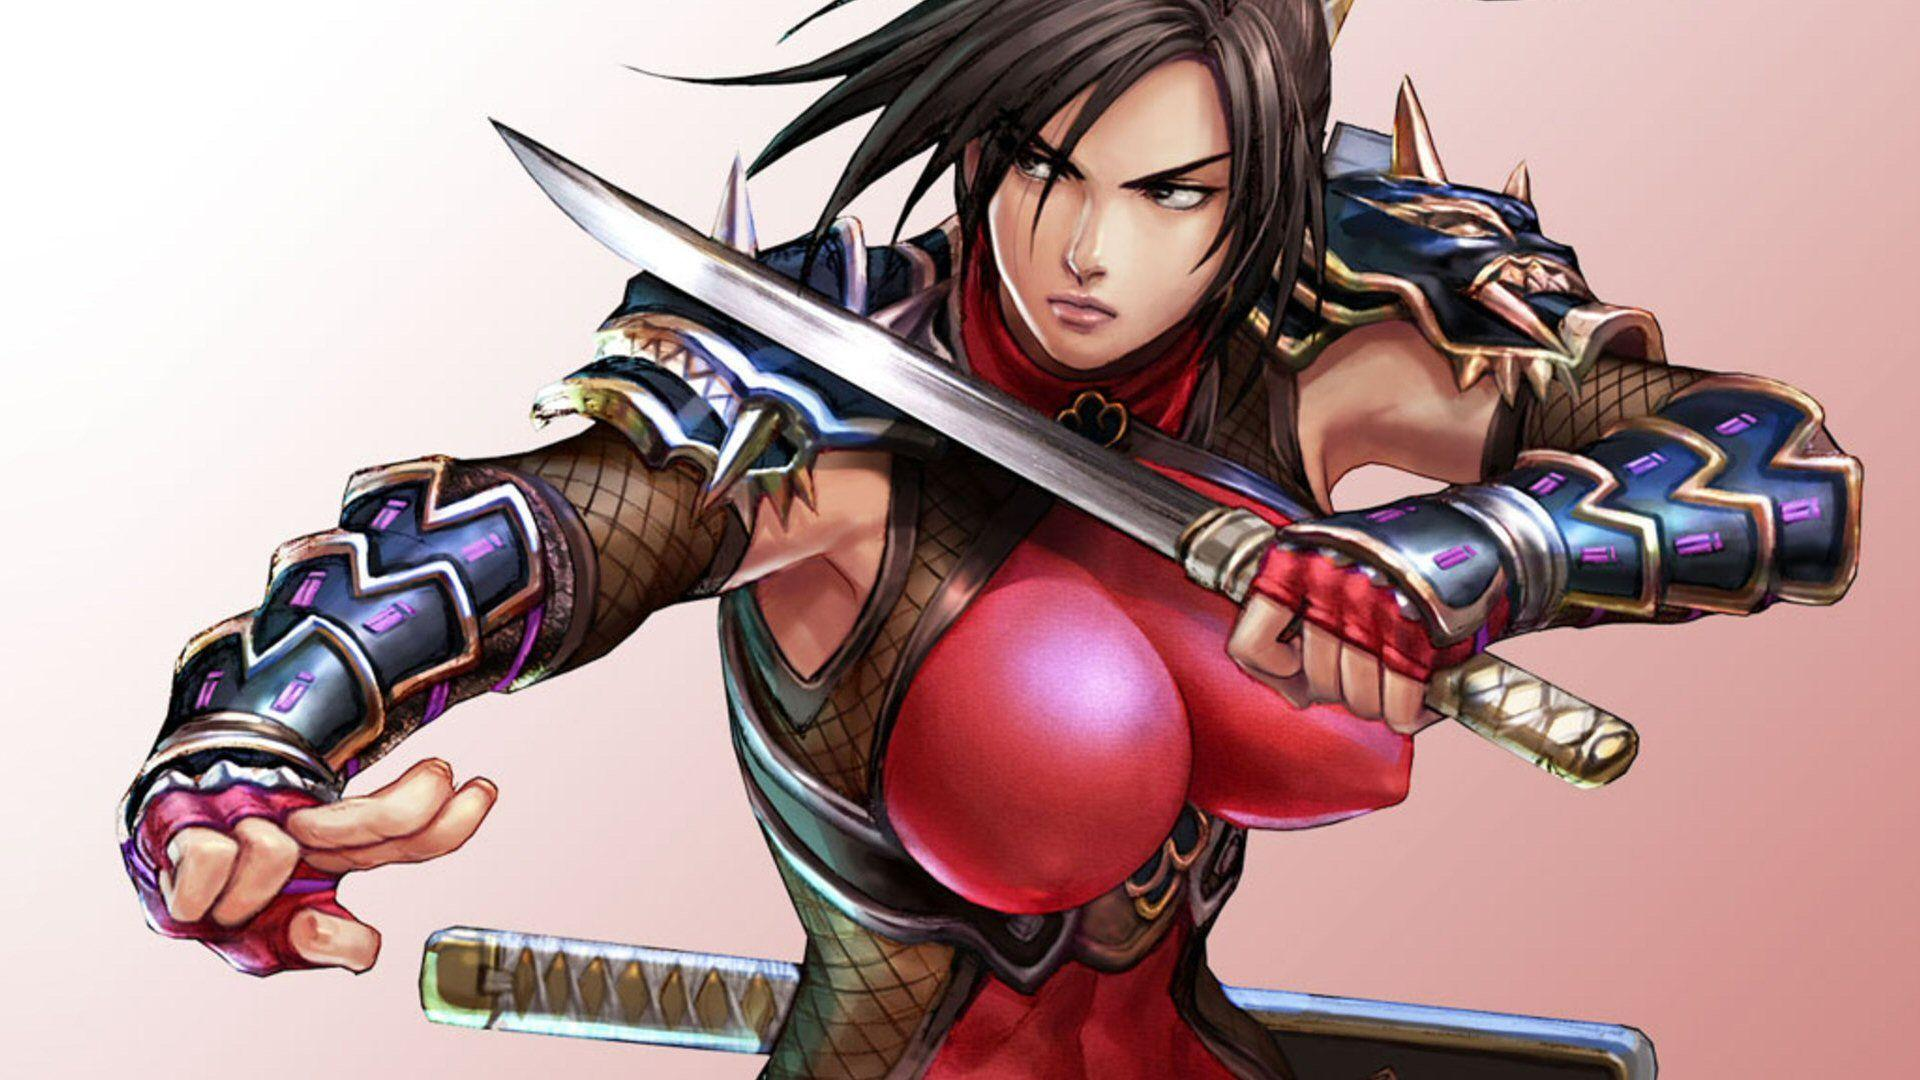 SoulCaliburWallpapers